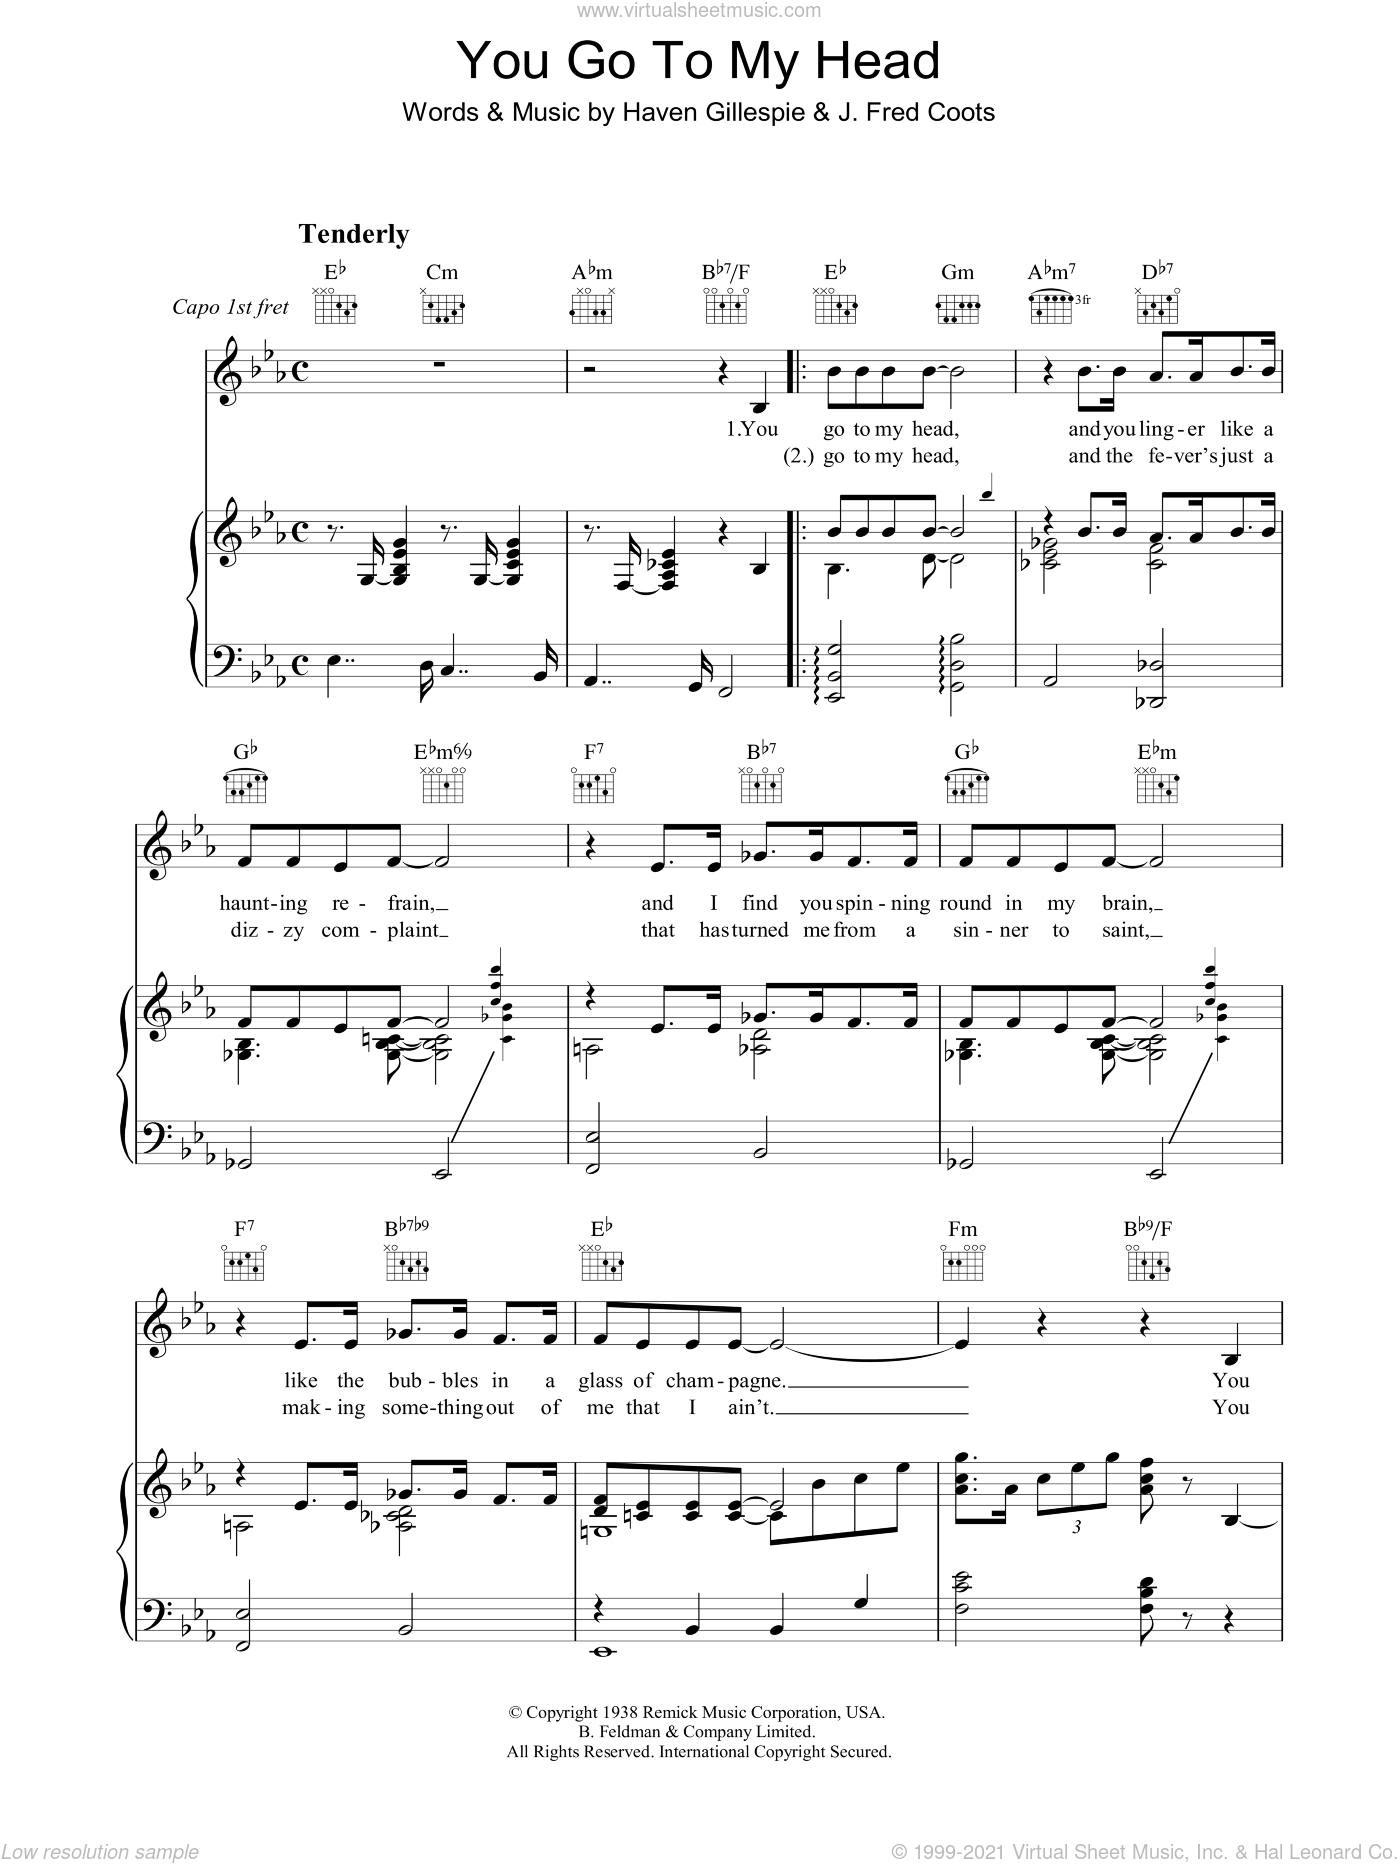 You Go To My Head sheet music for voice, piano or guitar by J. Fred Coots, Frank Sinatra and Haven Gillespie. Score Image Preview.